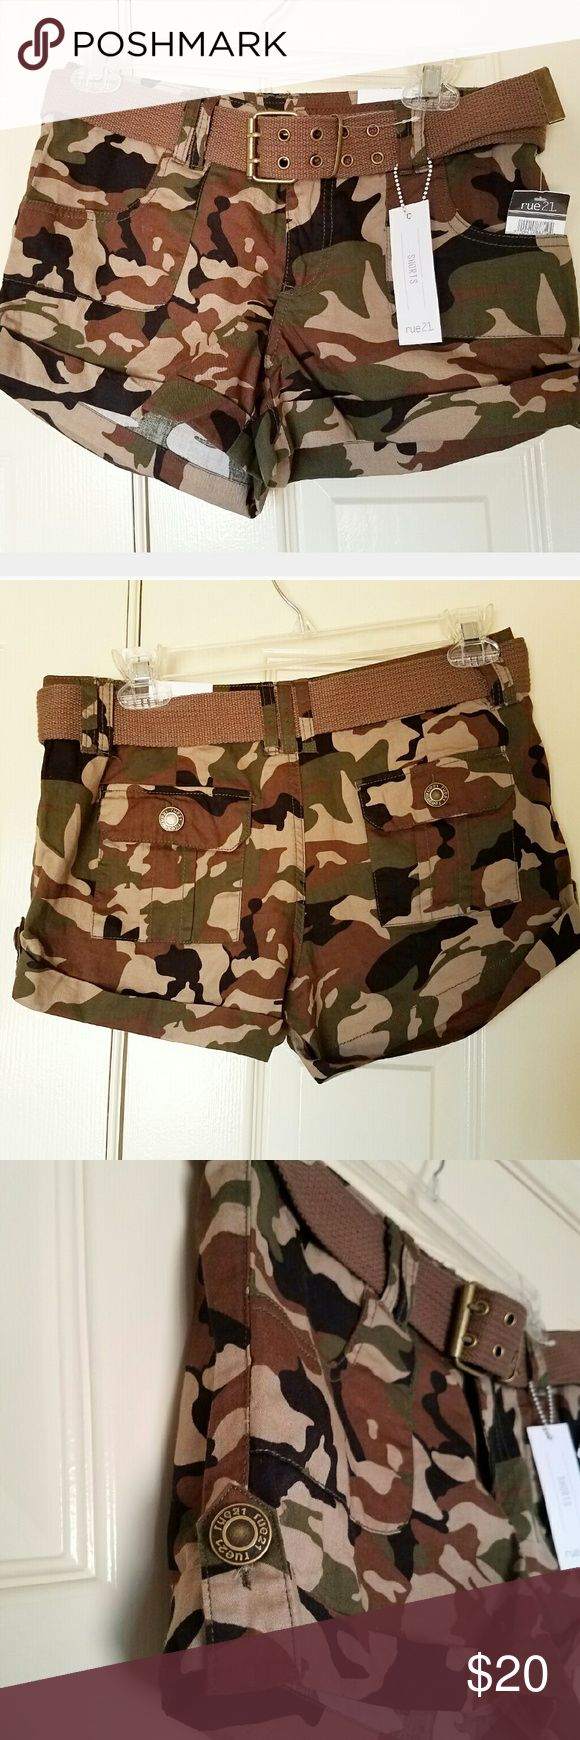 NEW Army Camo Shorts Cute Summer Casual 5/6 rue21 Super cute army camouflage print shorts. Size: 5/6 with brown belt. Front and back pockets.  New with tags.  #shorts #army #Summer #camo Rue 21 Shorts Cargos